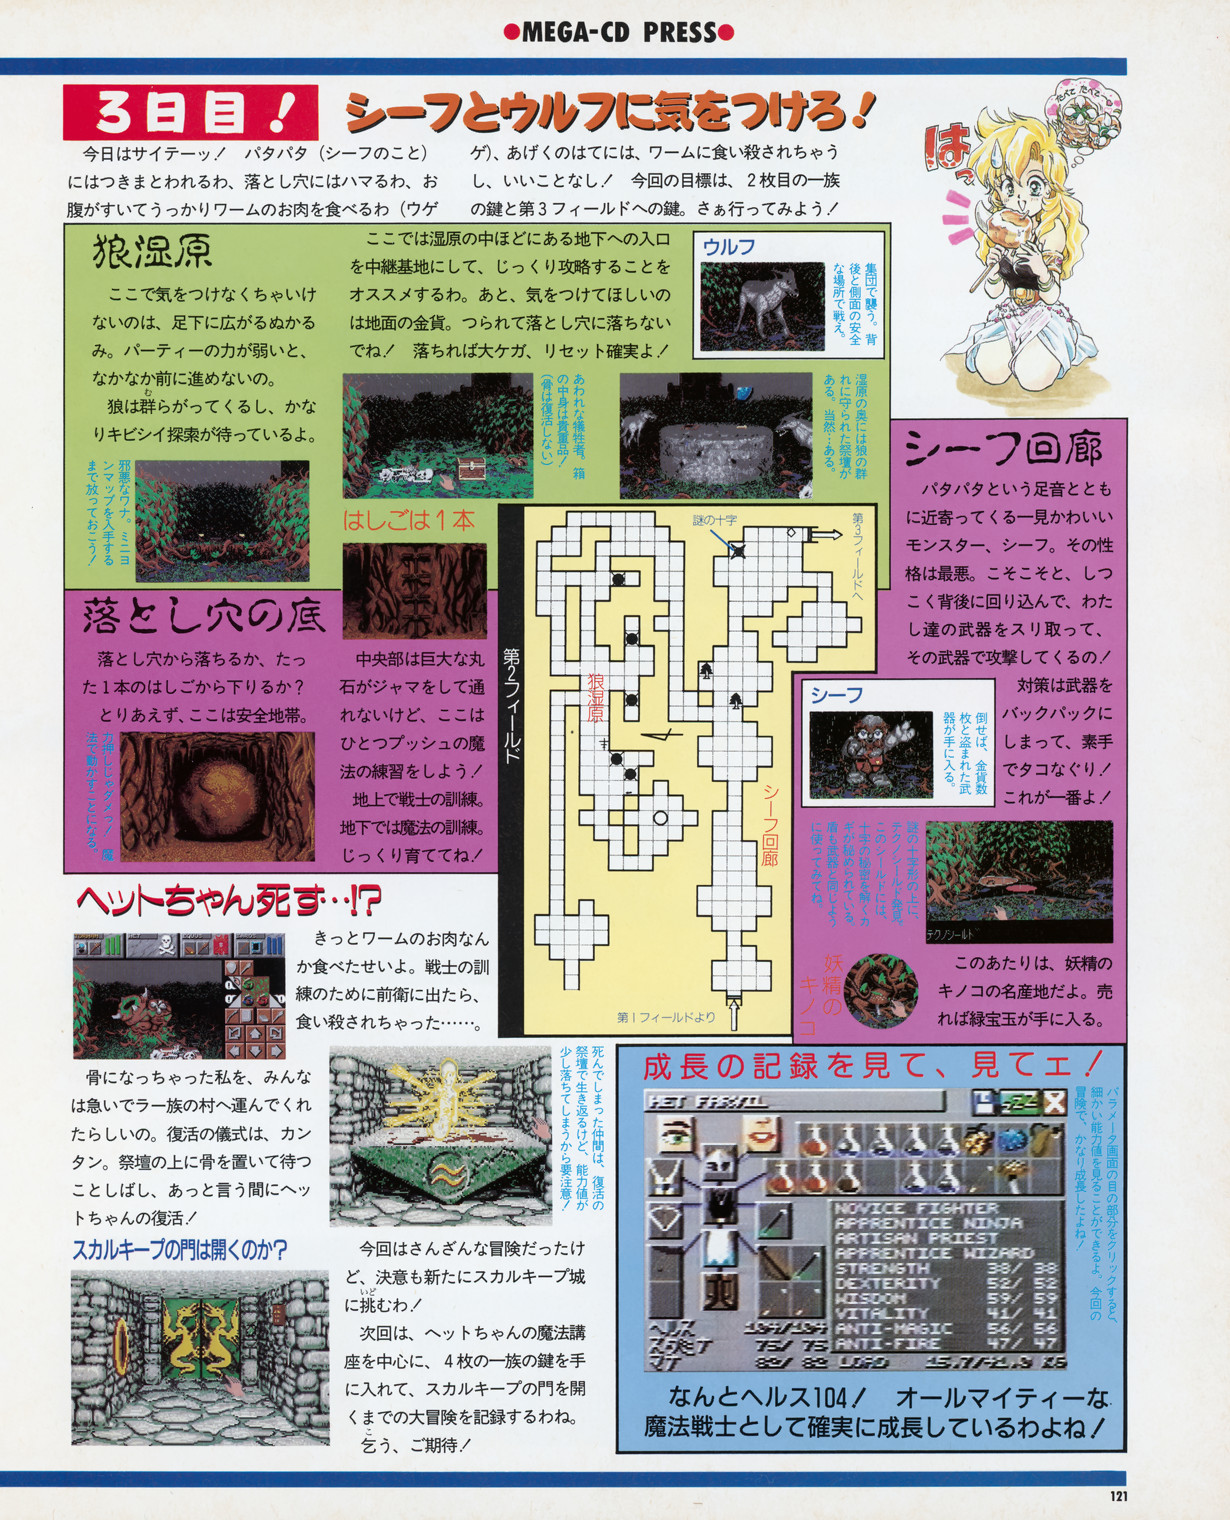 Dungeon Master II for Mega CD Hints published in Japanese magazine 'Beep! MegaDrive', April 1994, Page 121